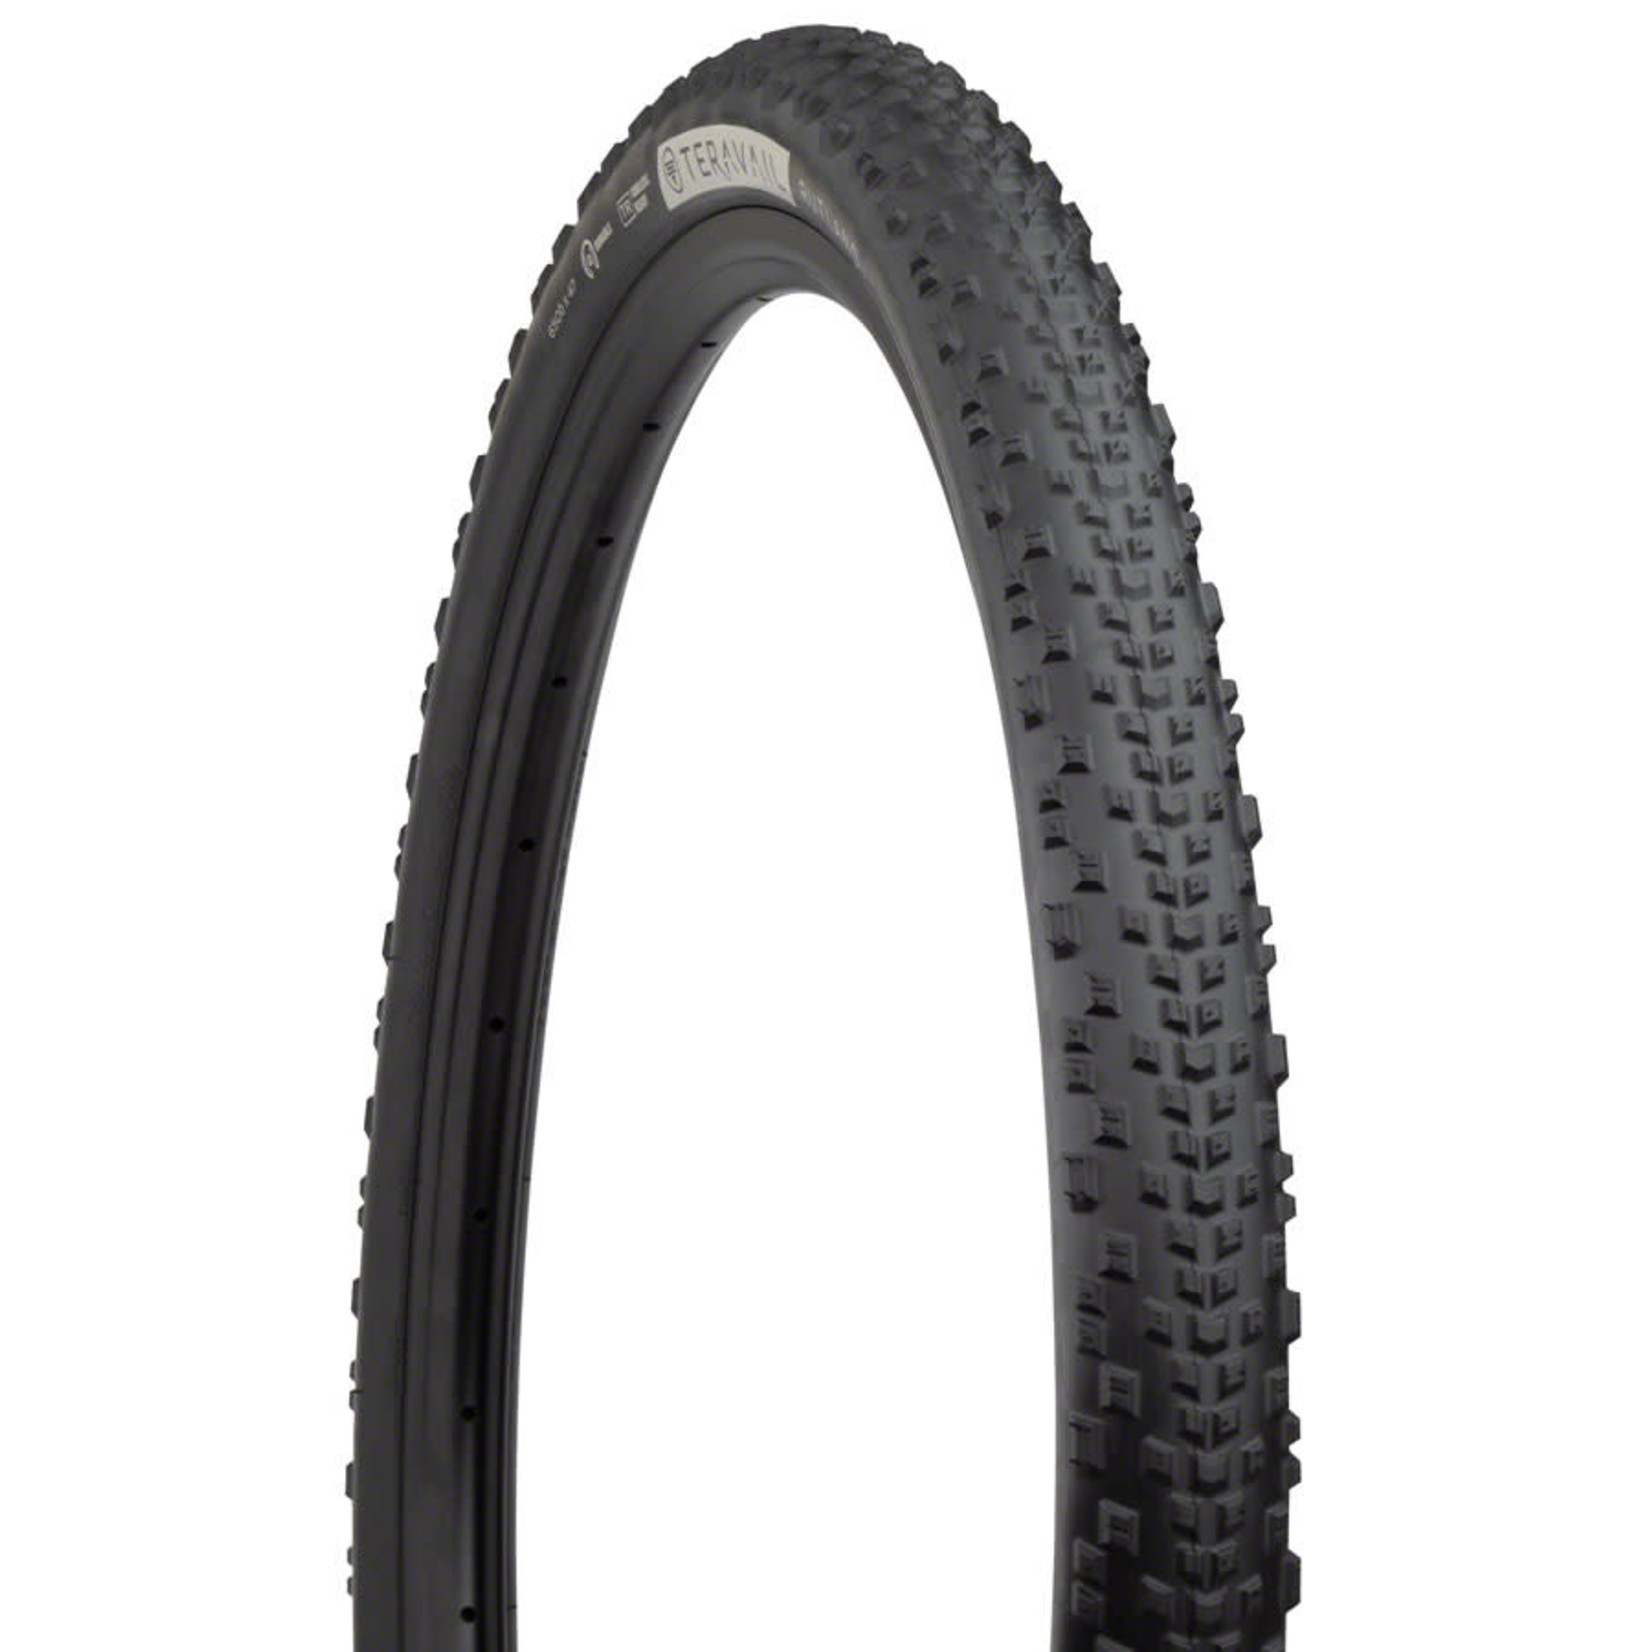 Teravail Teravail Rutland Tire - 650b x 47, Tubeless, Folding, Black, Durable